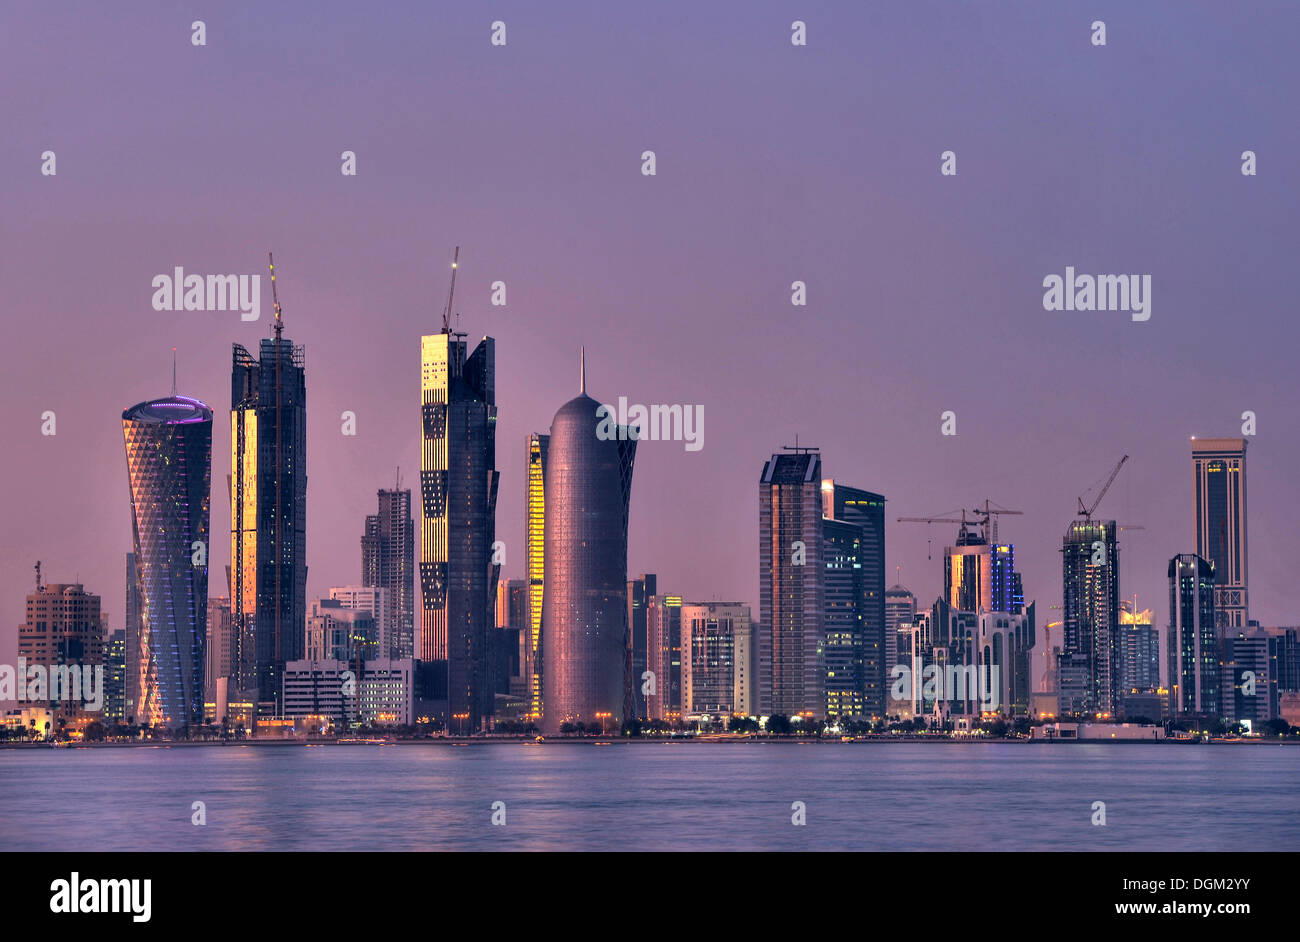 Skyline of Doha, Tornado Tower, Navigation Tower, Peace Towers, Al-Thani Tower, at dusk, Qatar, Persian Gulf, Middle East, Asia - Stock Image